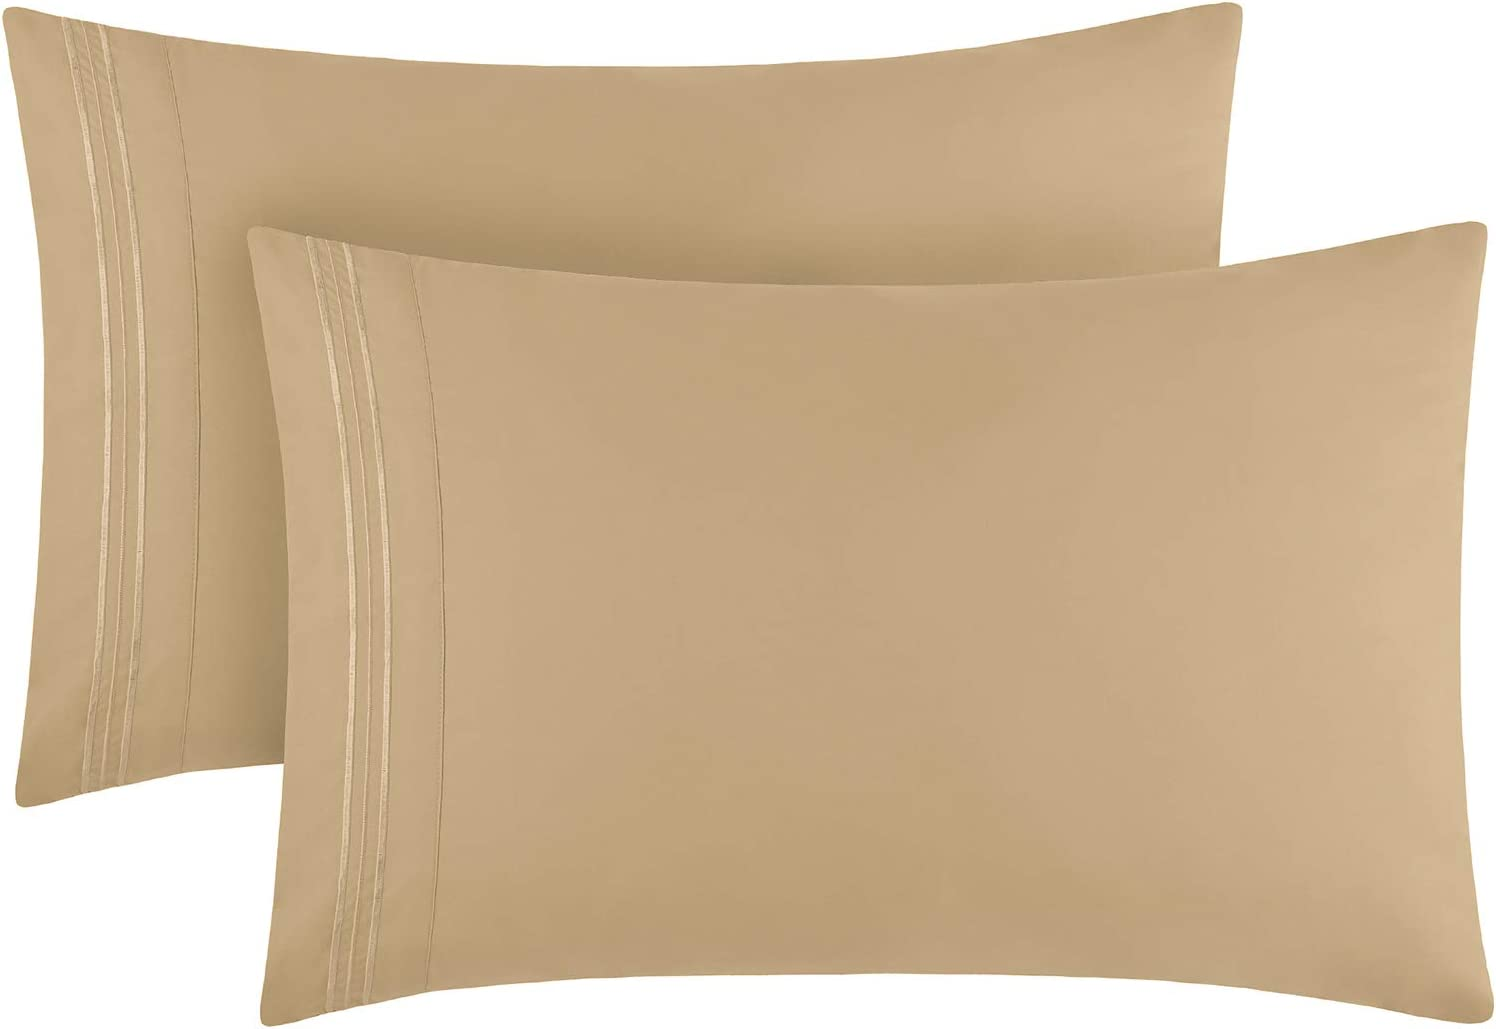 Mellanni Luxury Pillowcase Set - Brushed Microfiber 1800 Bedding - Wrinkle, Fade, Stain Resistant - Hypoallergenic (Set of 2 Standard Size, Beige): Home & Kitchen